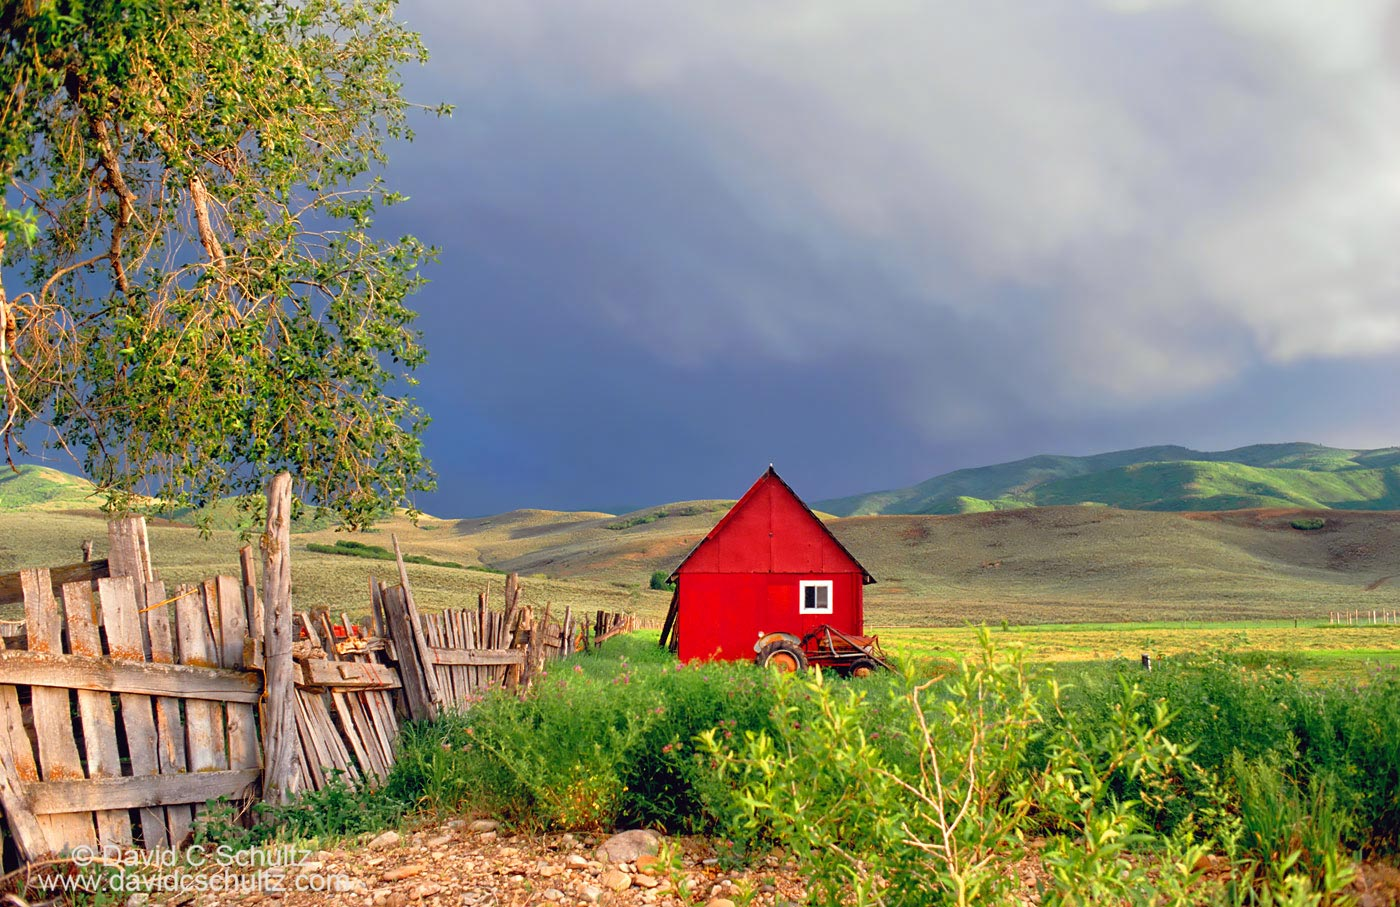 Red barn Heber Utah - Image #13-55